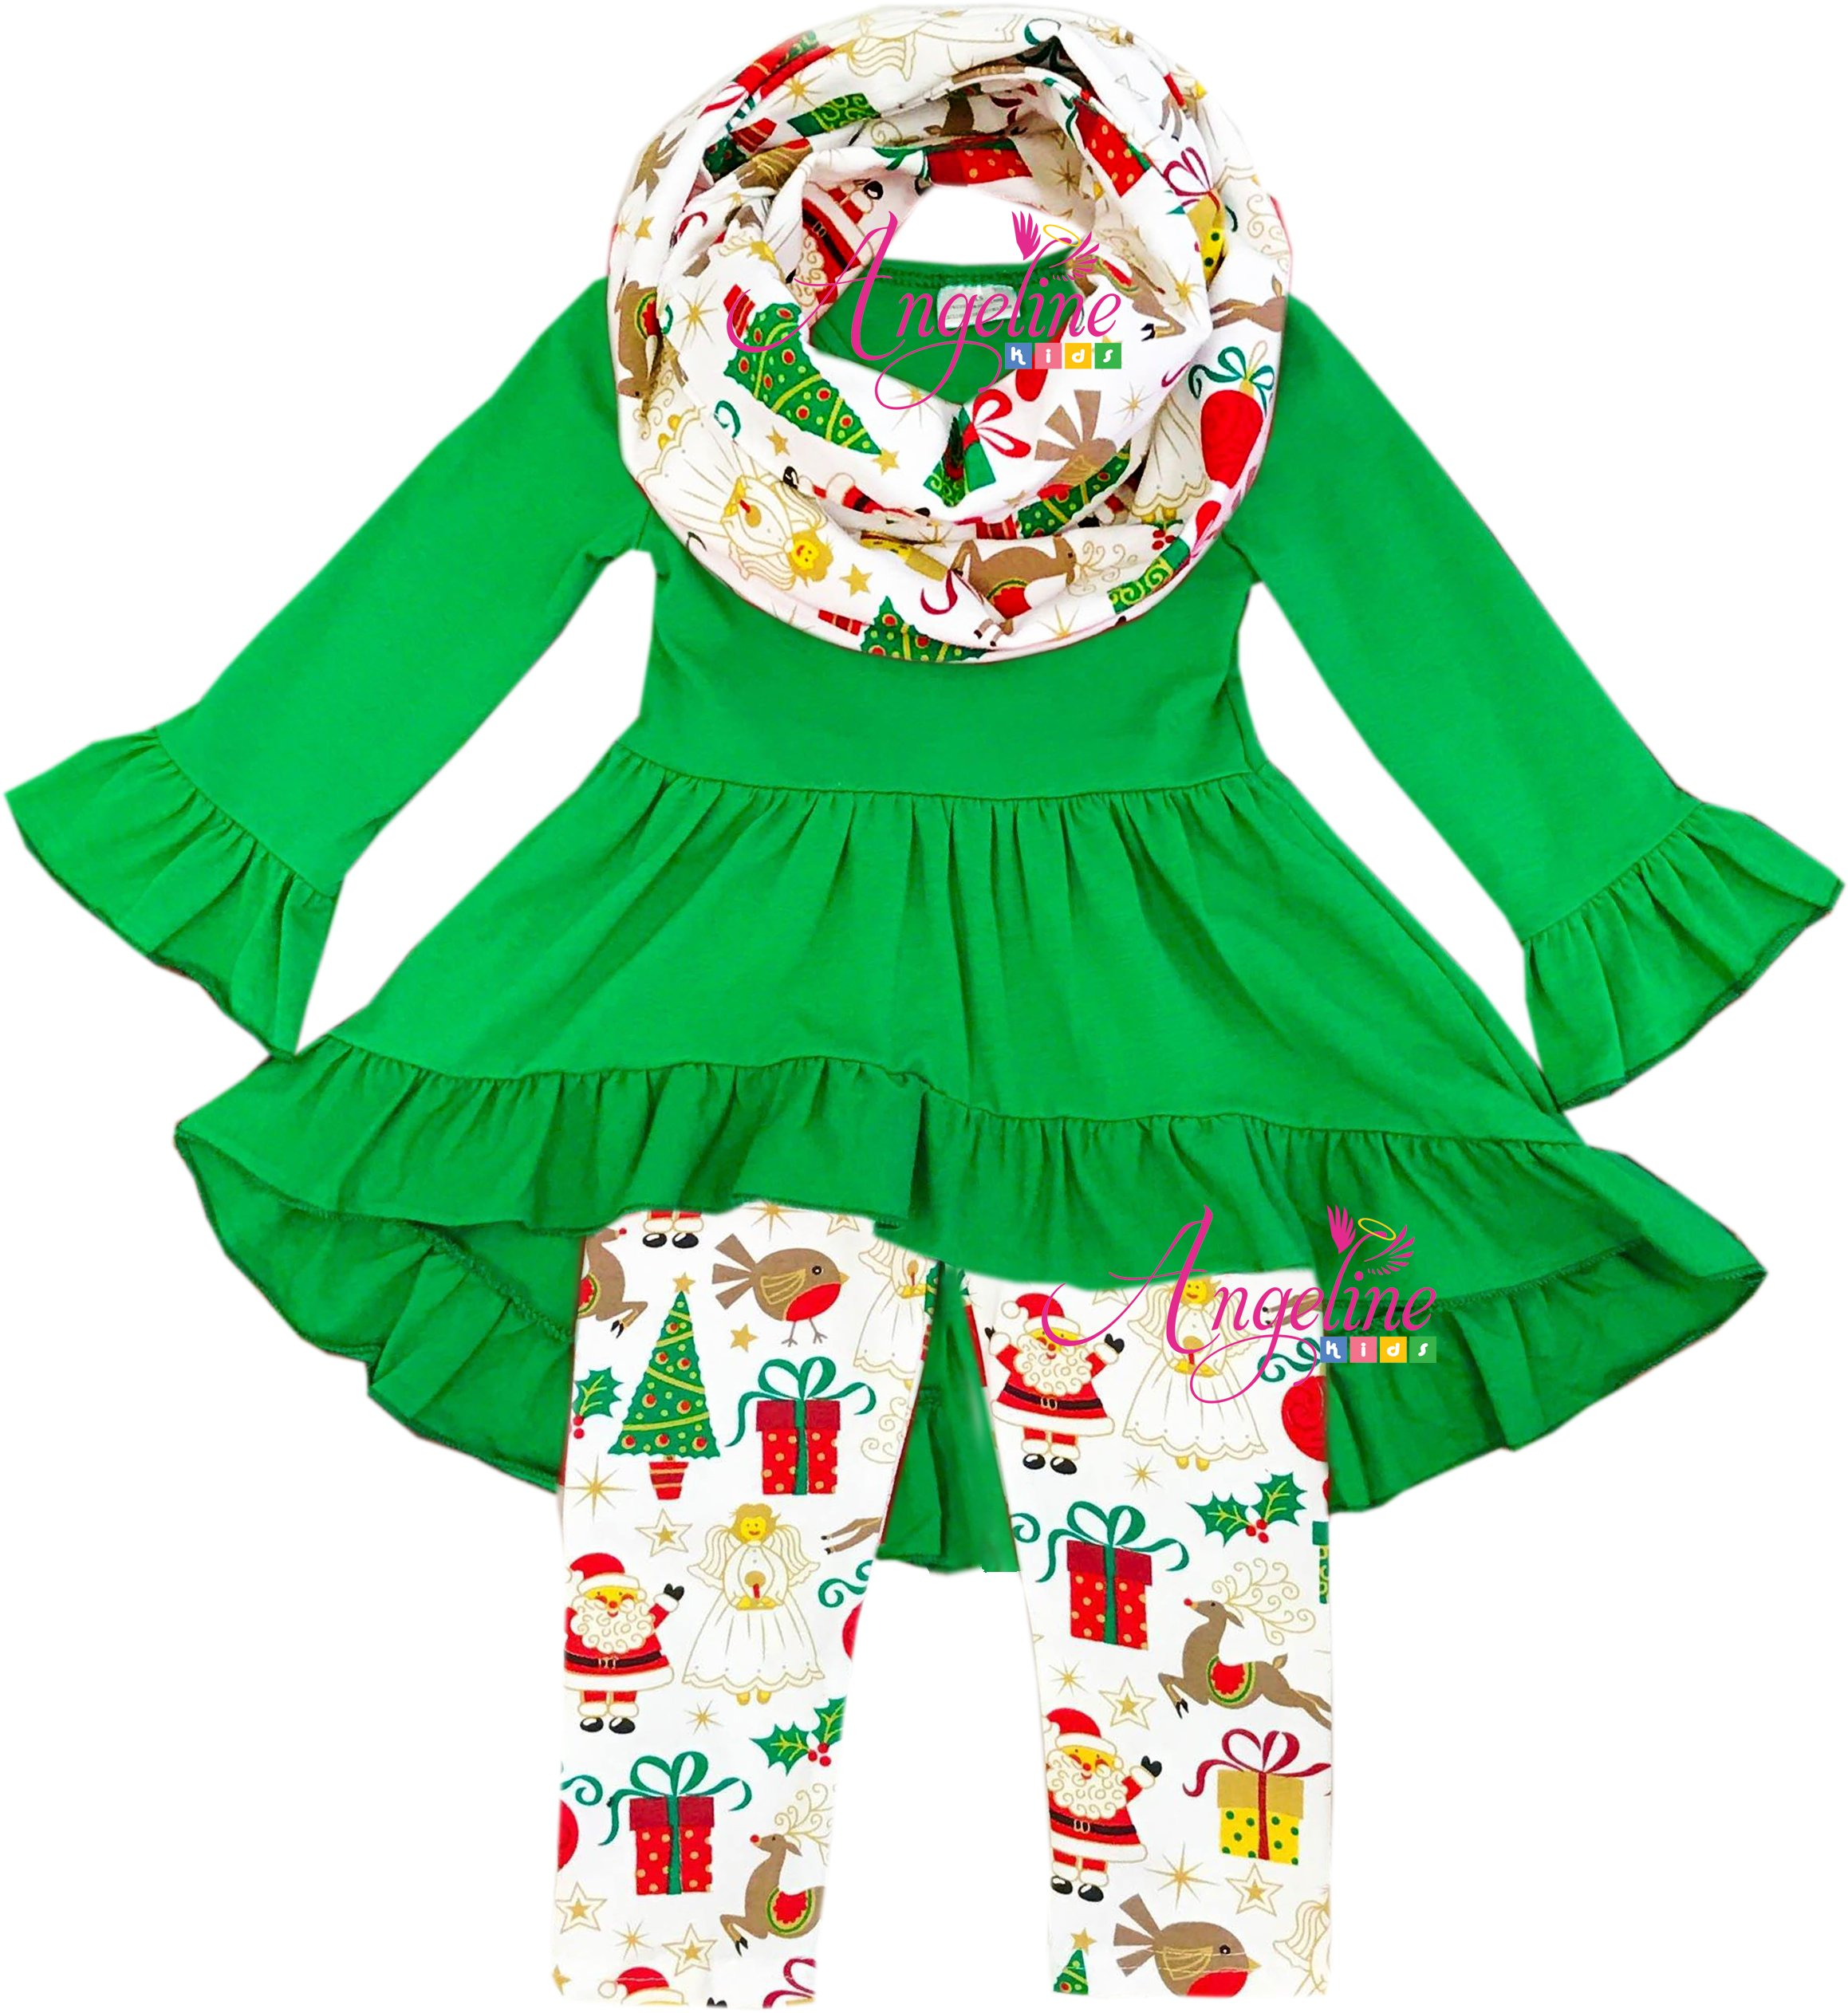 Boutique Clothing Girls Christmas Happy Holiday Green Top Scarf Set 12-18M/3XS